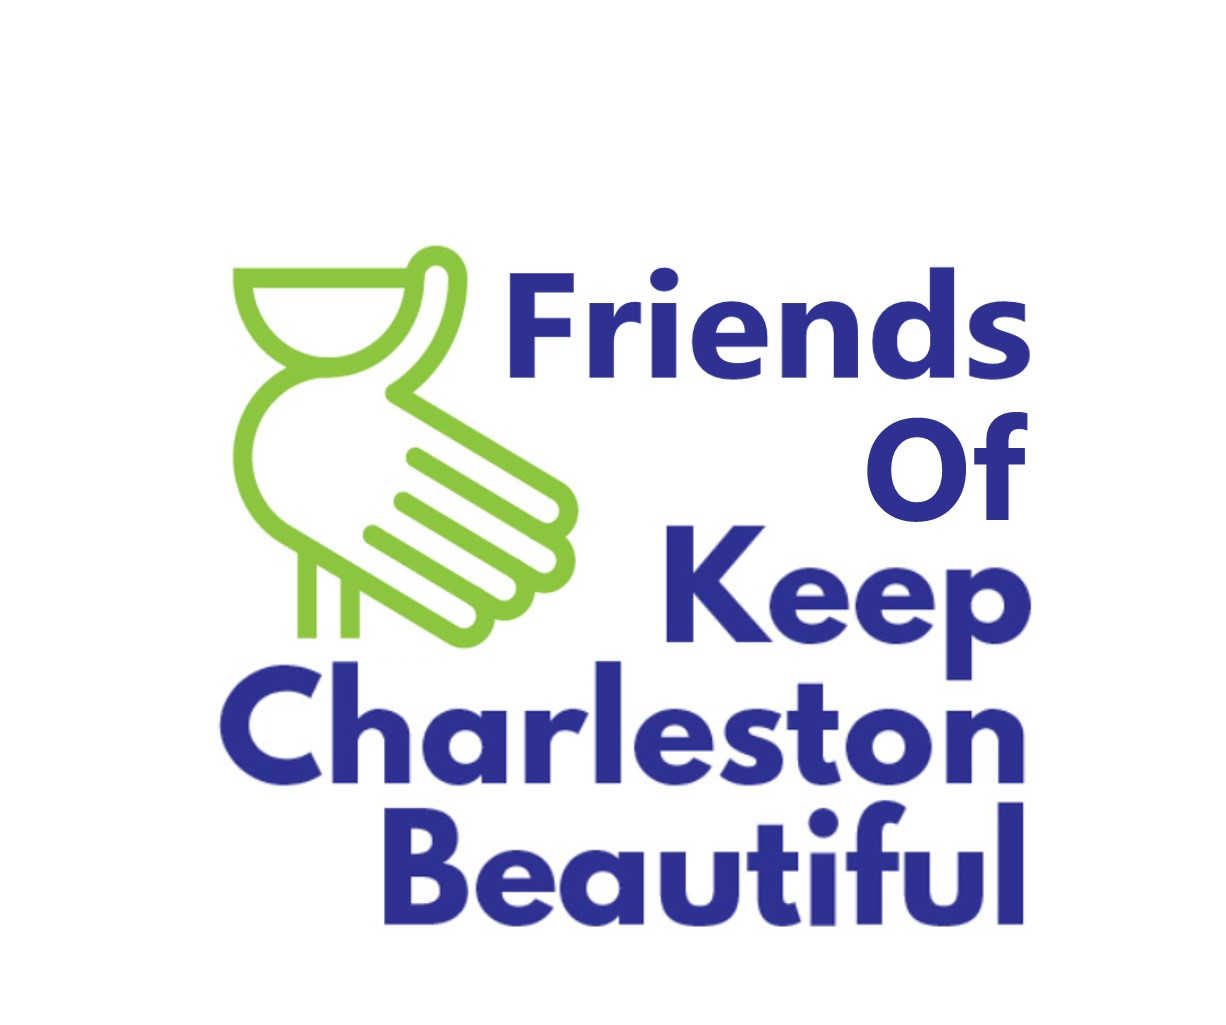 Friends of Keep Charleston Beautiful